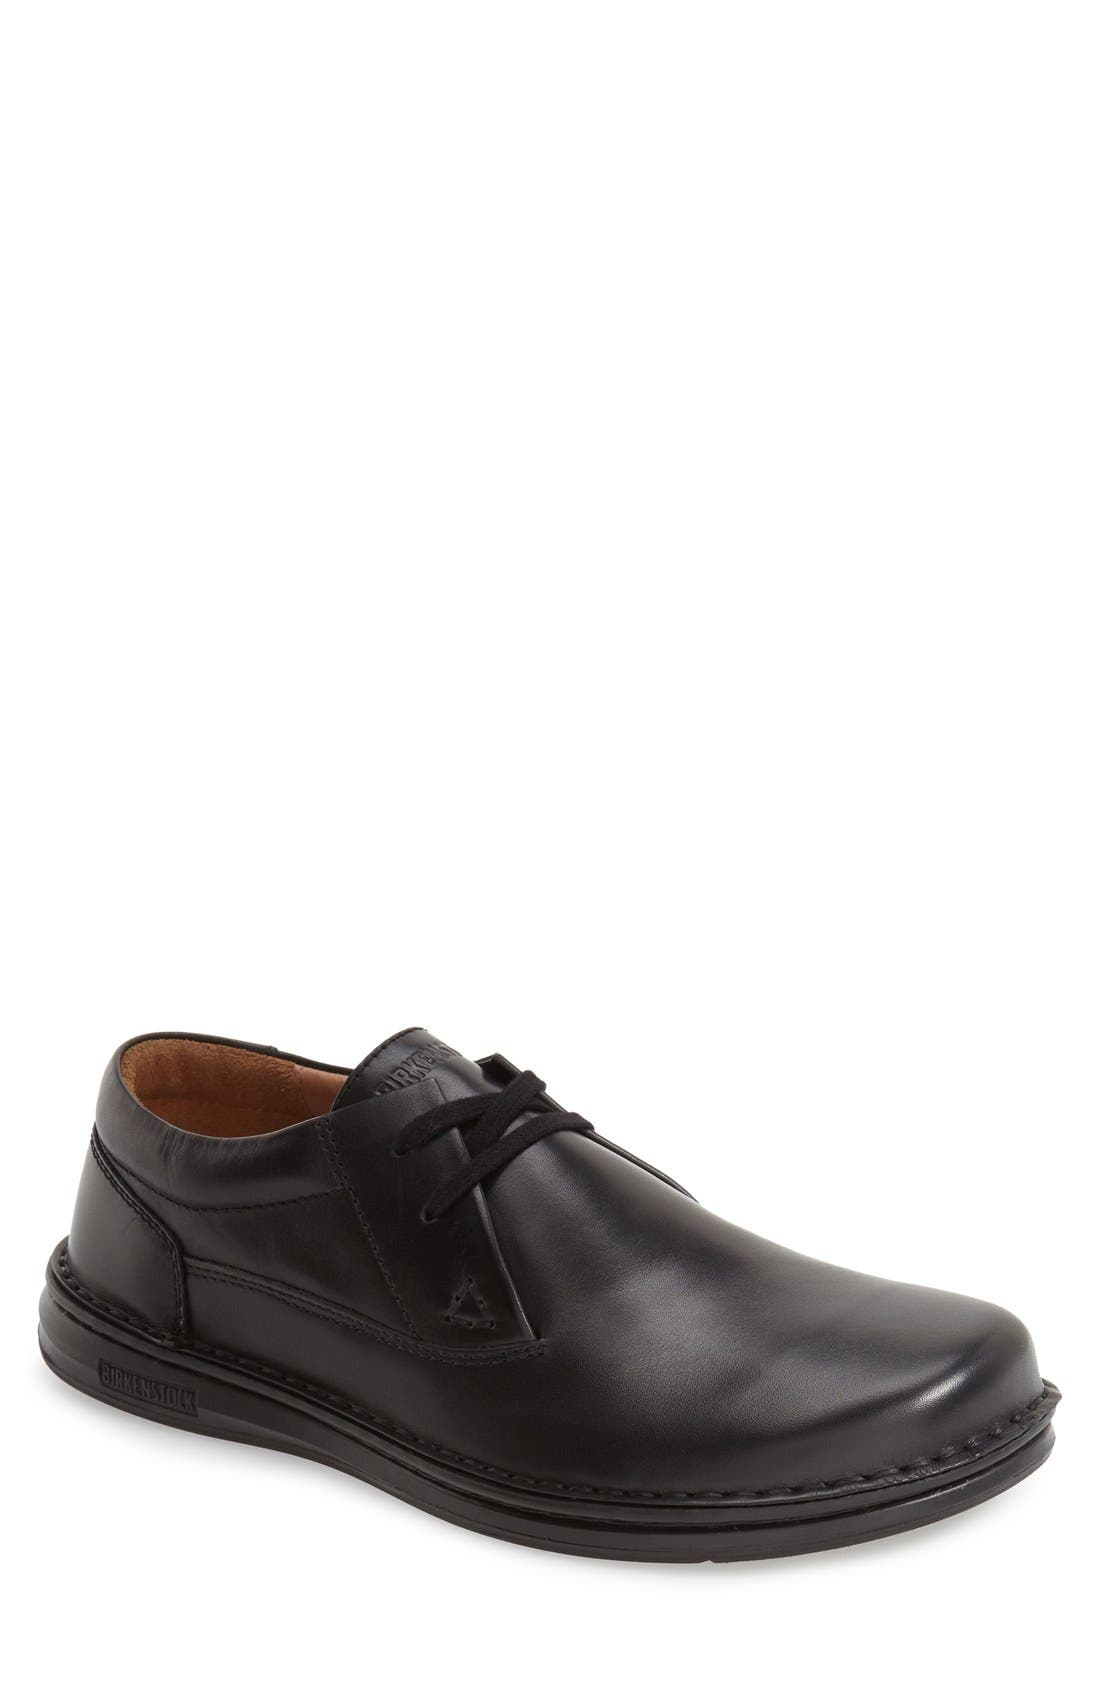 'Memphis' Oxford,                         Main,                         color, Black Leather